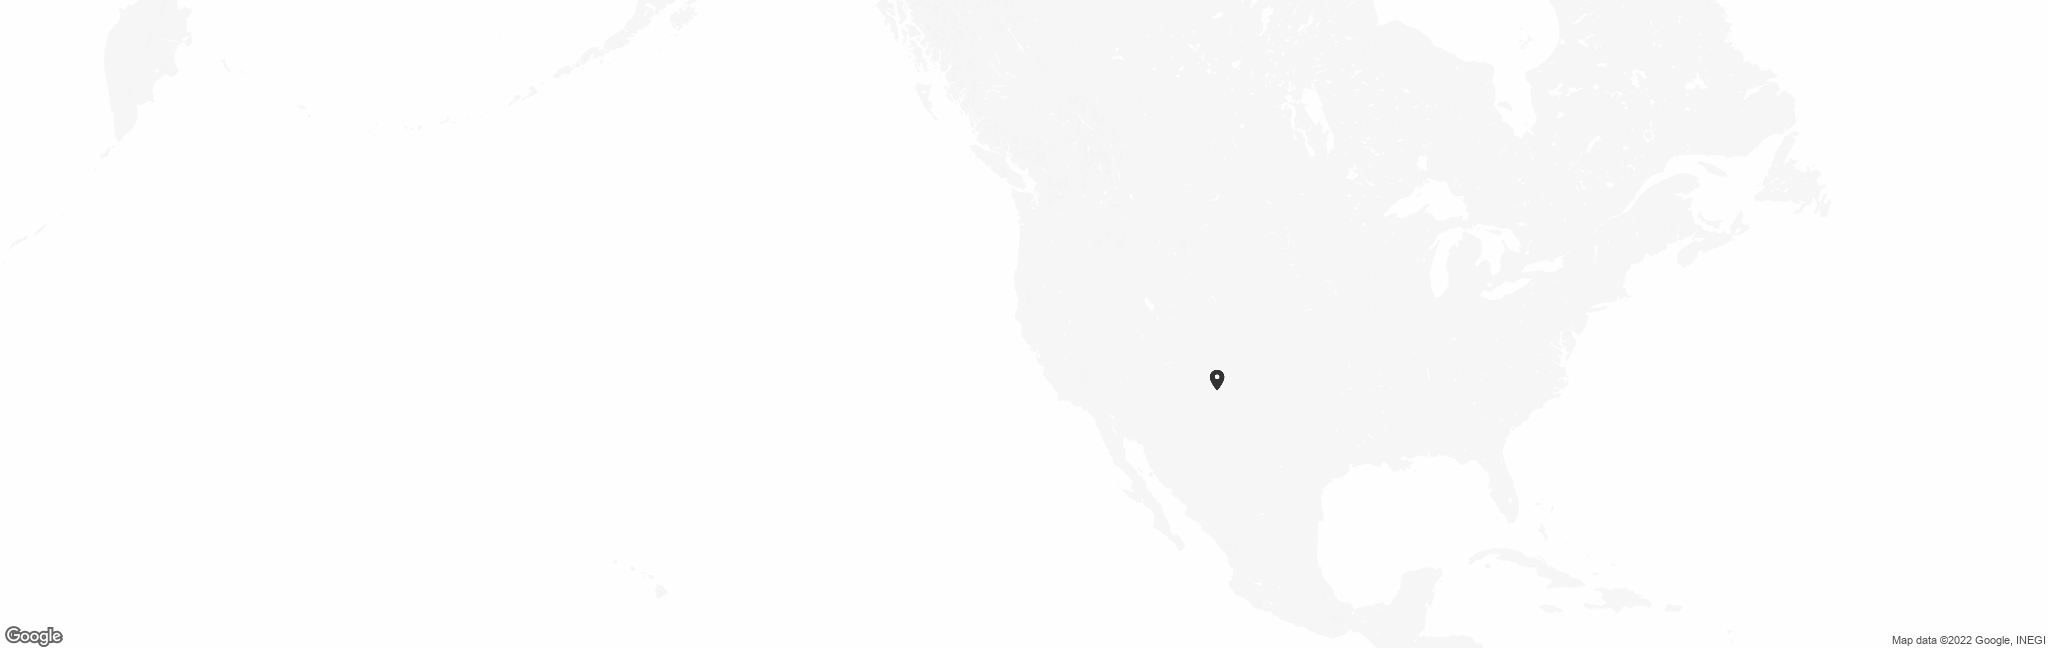 Map of US with pin of Paws To People location